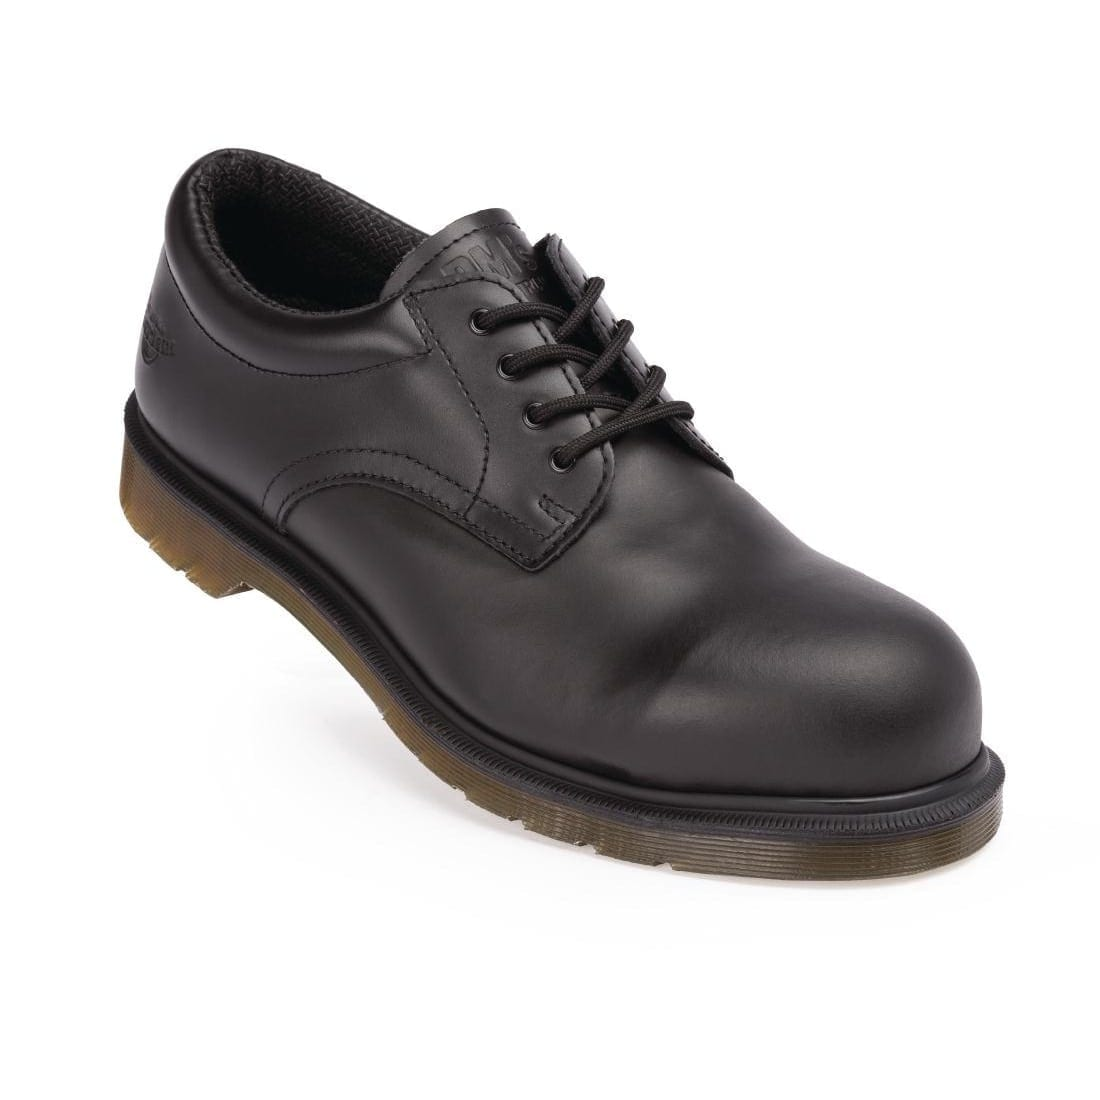 Dr Martens Classic Black Icon Safety Shoe - Size 37-0